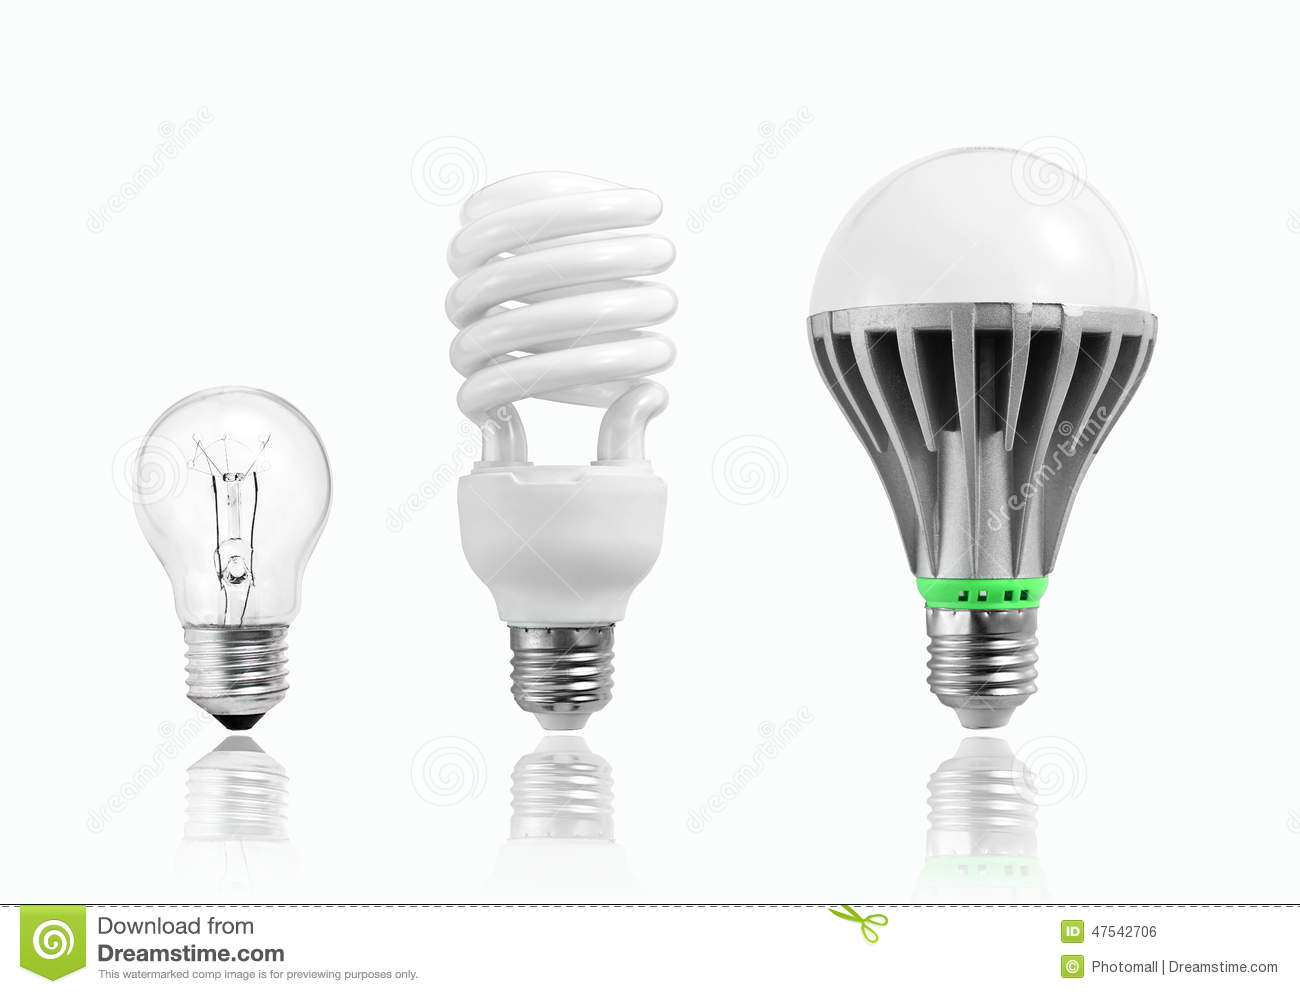 Led Lamp Led Light Energy Saving Lighting Lamp Bulb Led Bulb Tungsten Bulb Incandescent Bulb